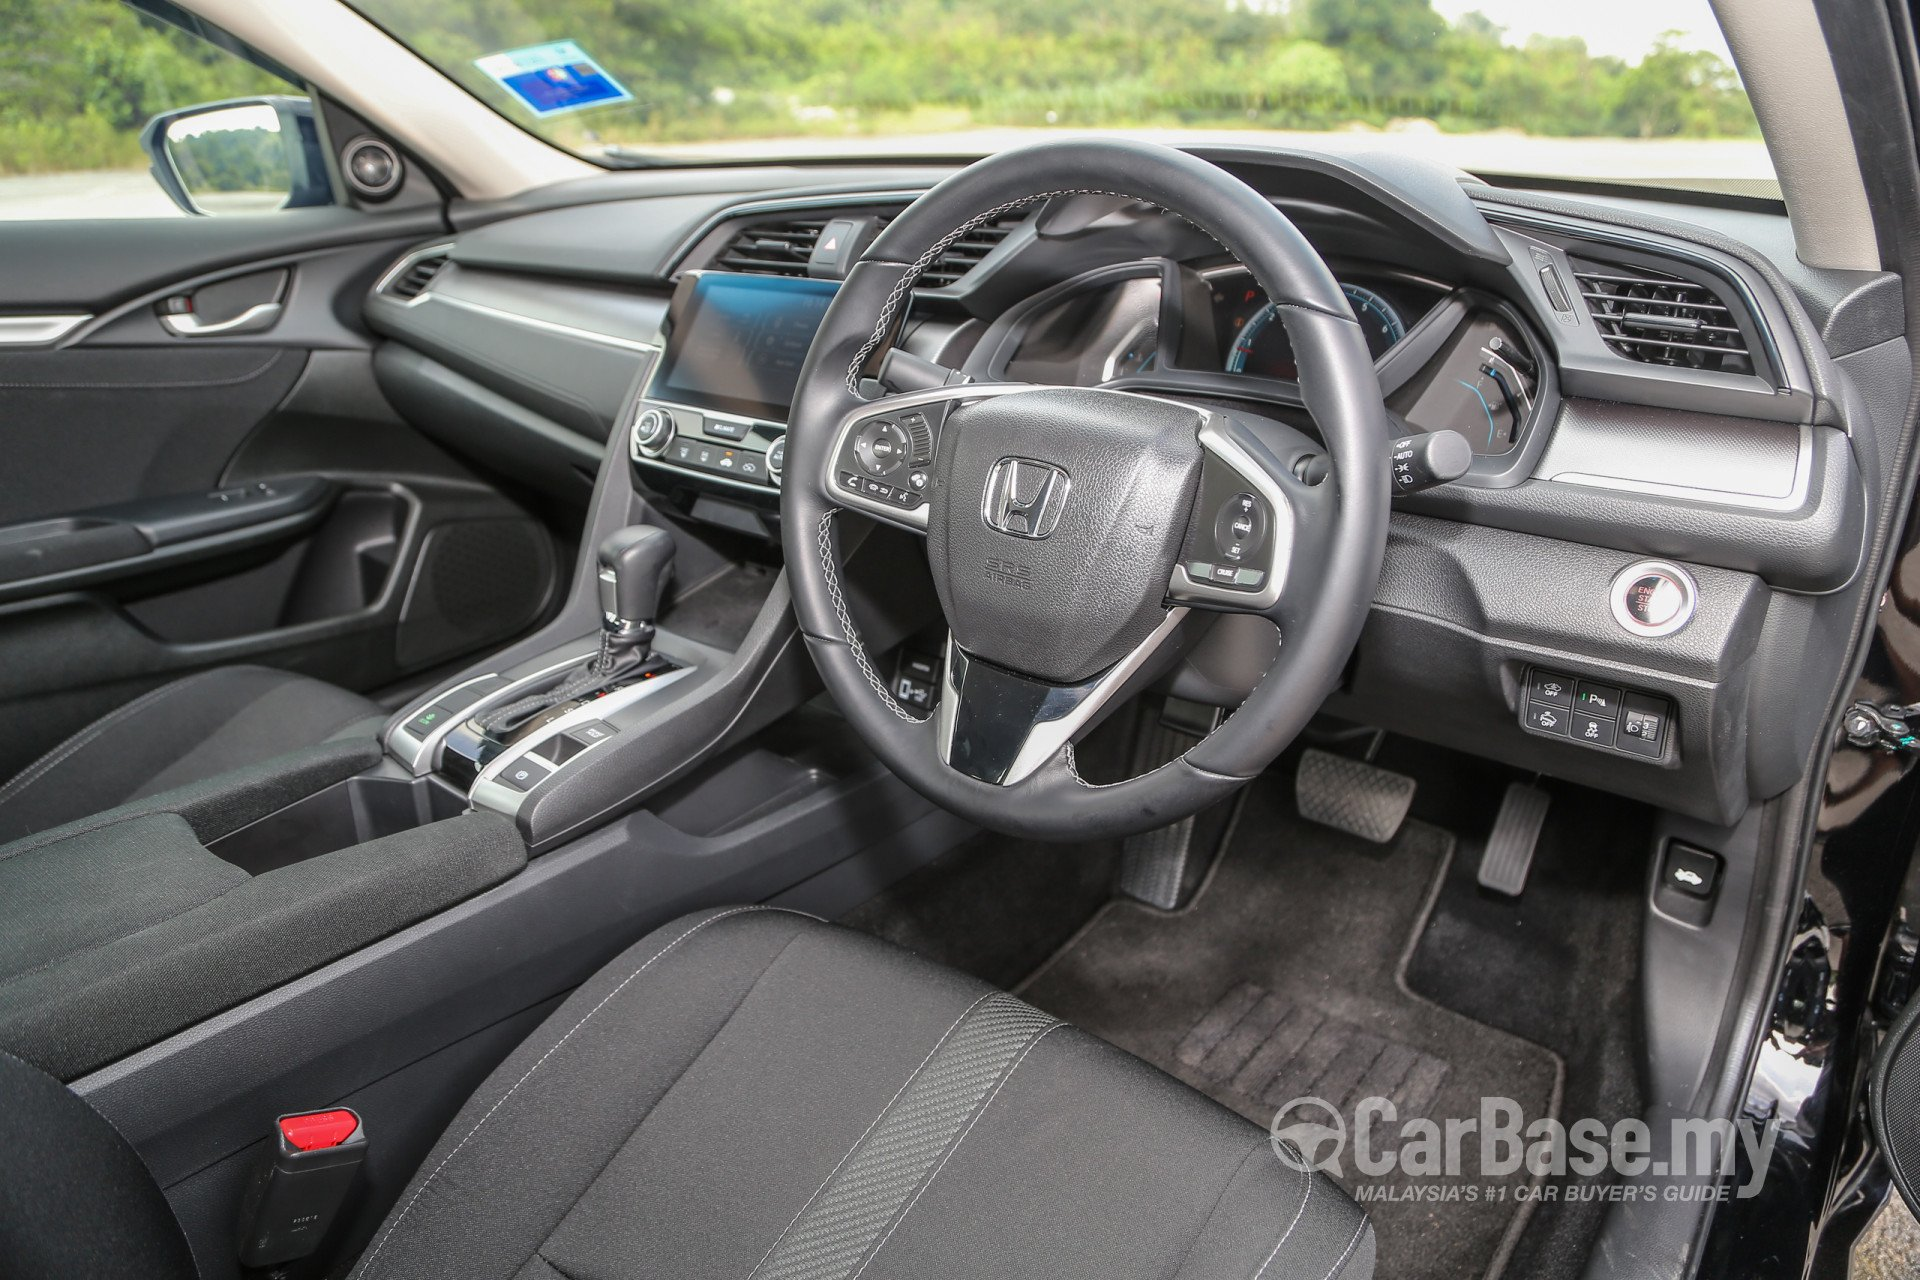 https://s1.carbase.my/upload/24/44/443/interior/s13-1486374560-1944-honda-civic.jpg